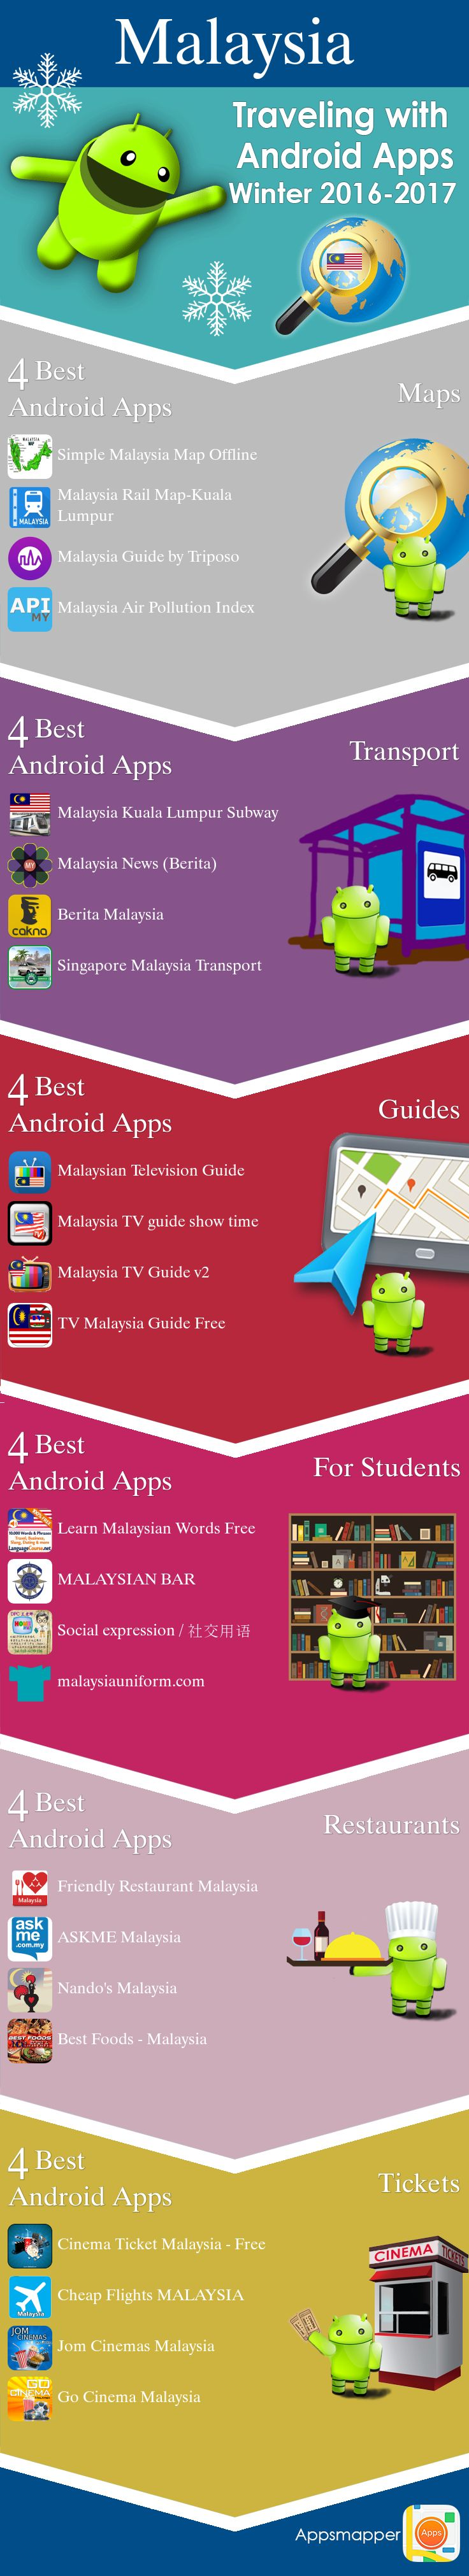 Malaysia Android apps: Travel Guides, Maps, Transportation, Biking, Museums, Parking, Sport and apps for Students.